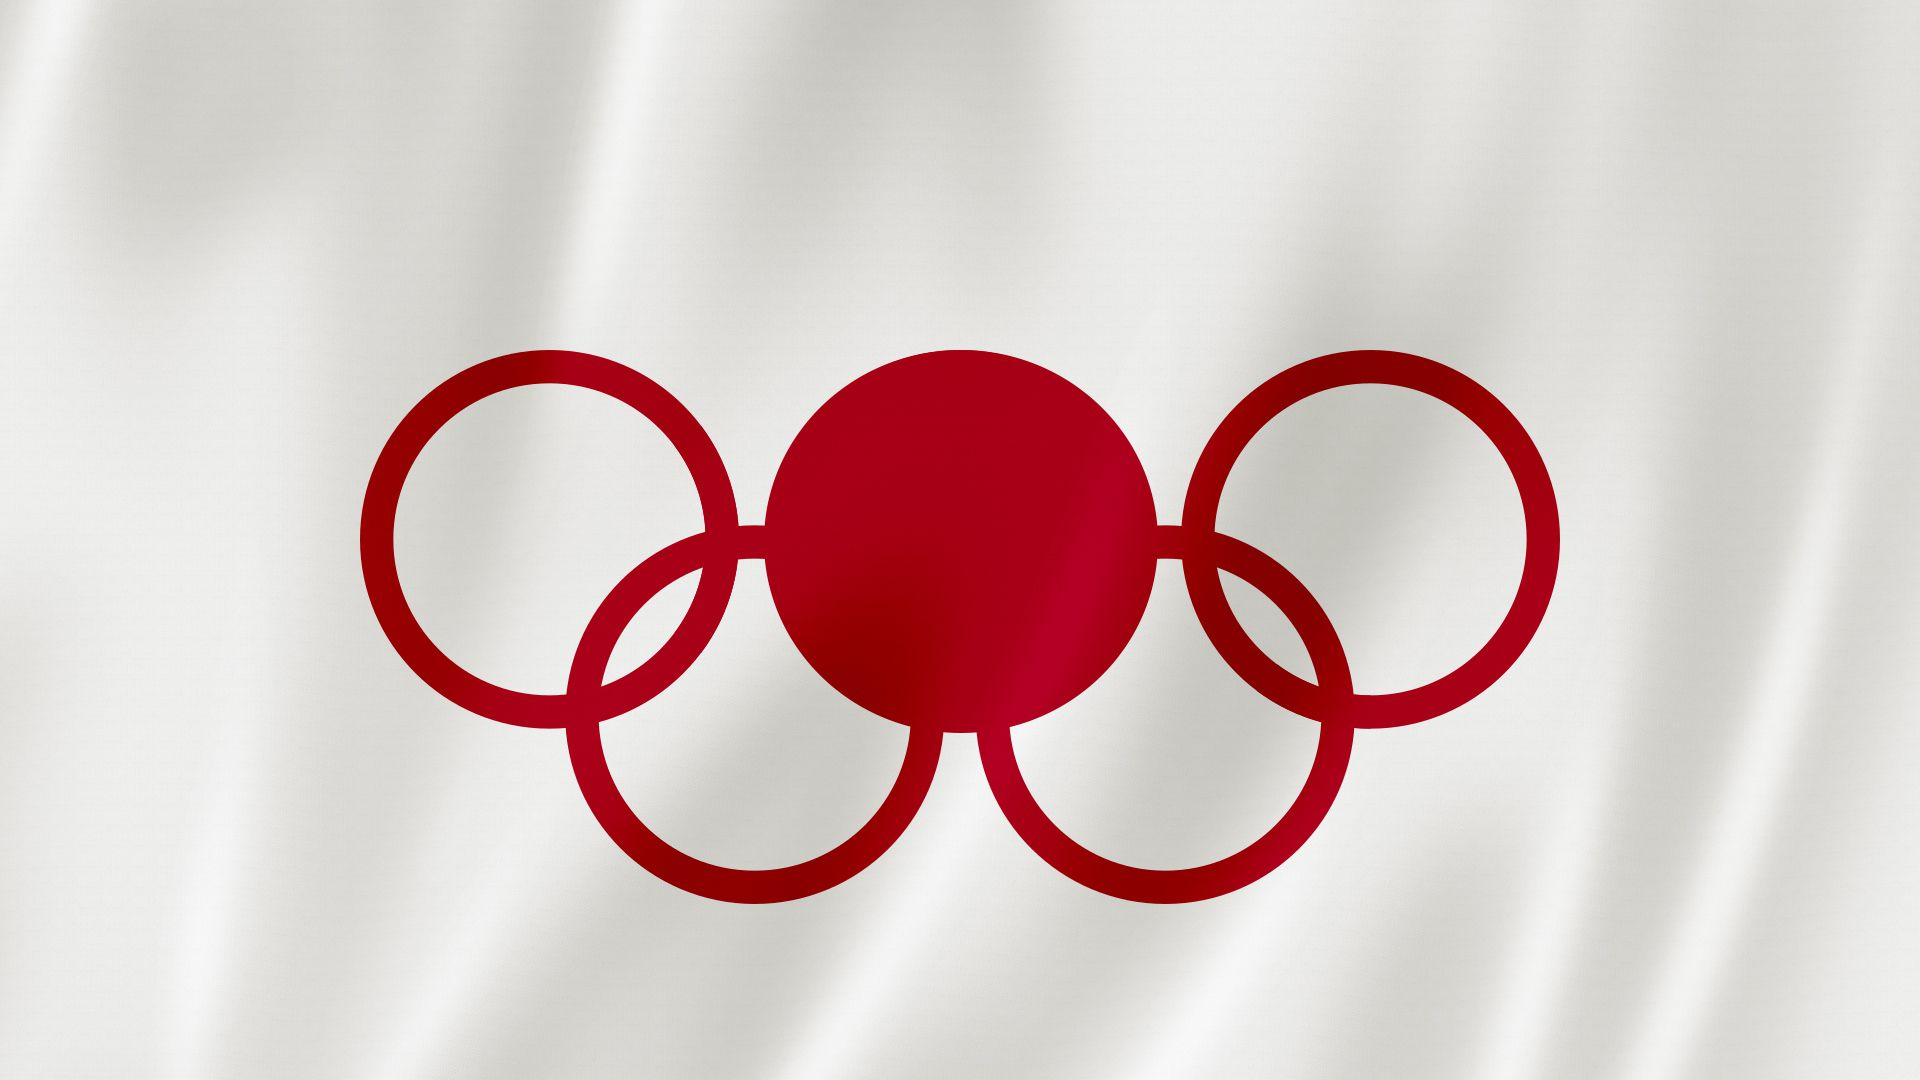 Illustration of Japanese flag with the olympics logo